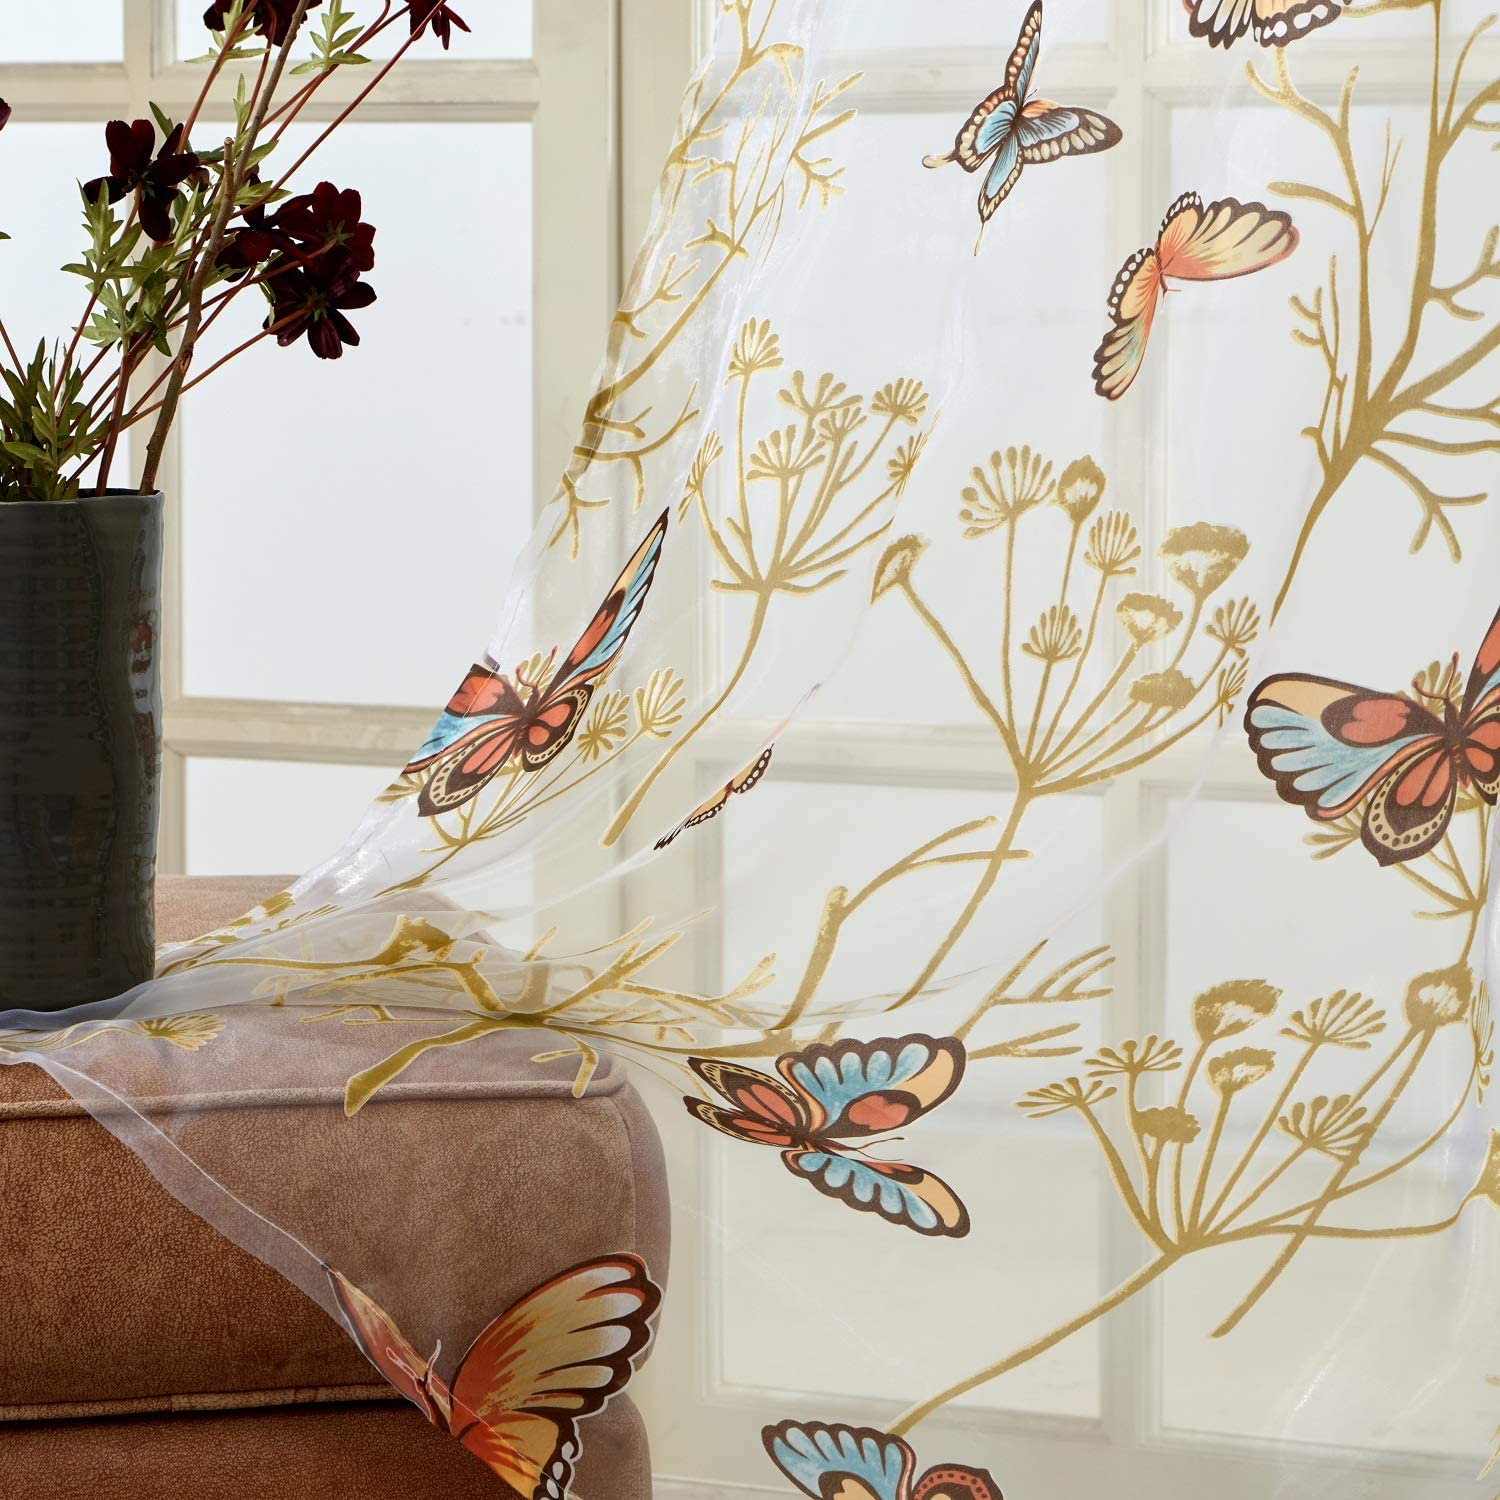 Top Finel Butterfly Voile Sheer Curtains Bedr Inch OFFicial store for Length 63 Spring new work one after another